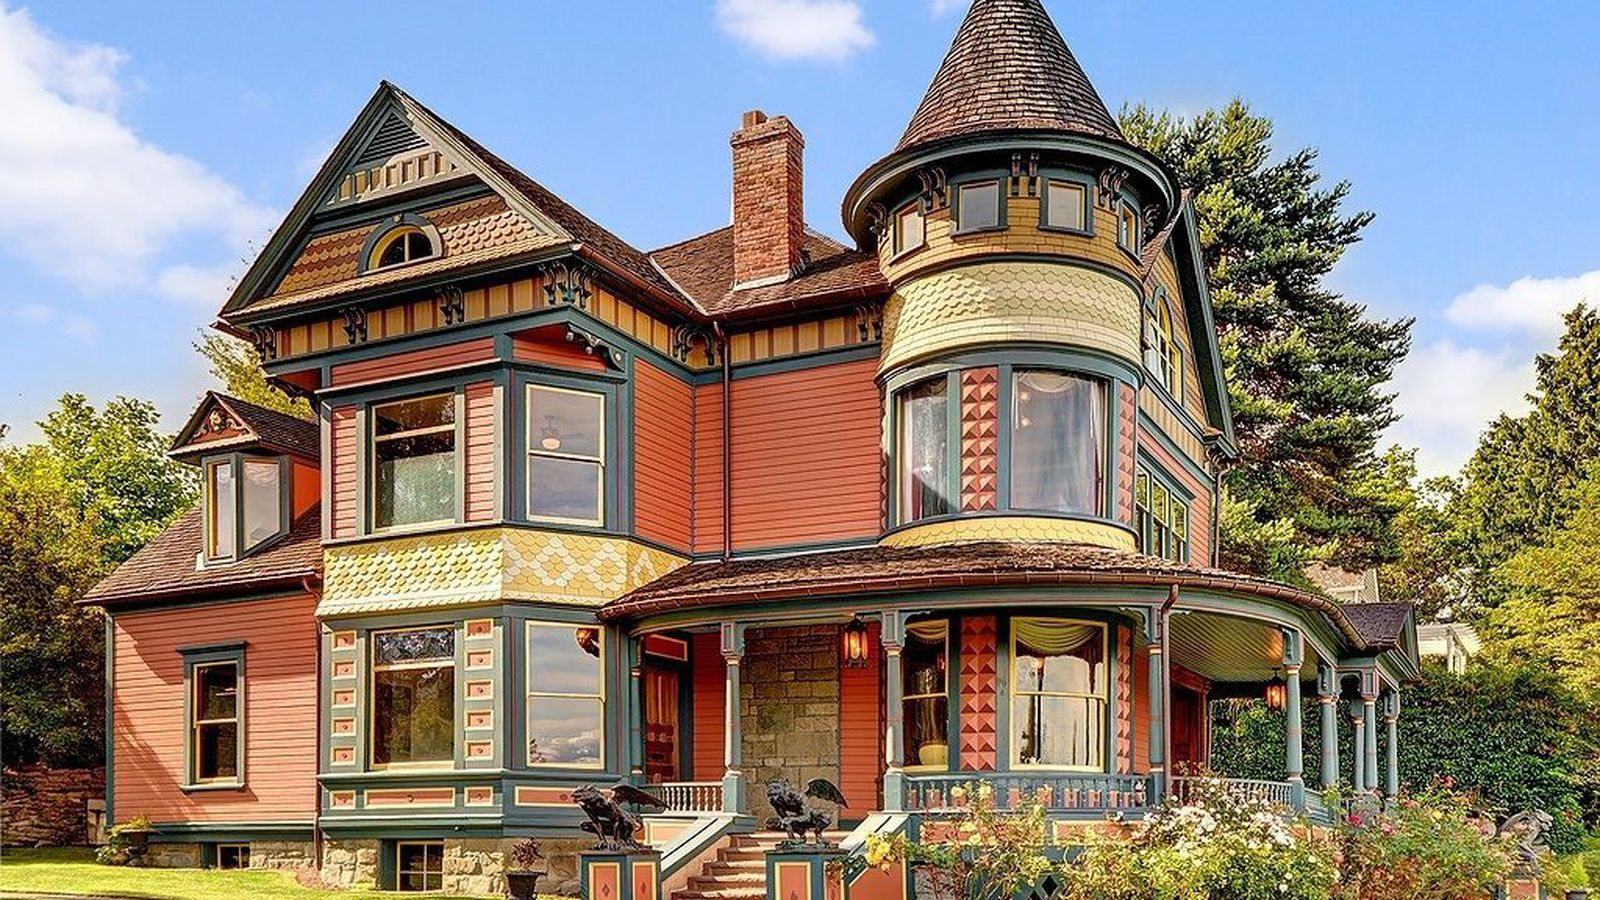 10 Historic Victorian Homes On The Market In Washington